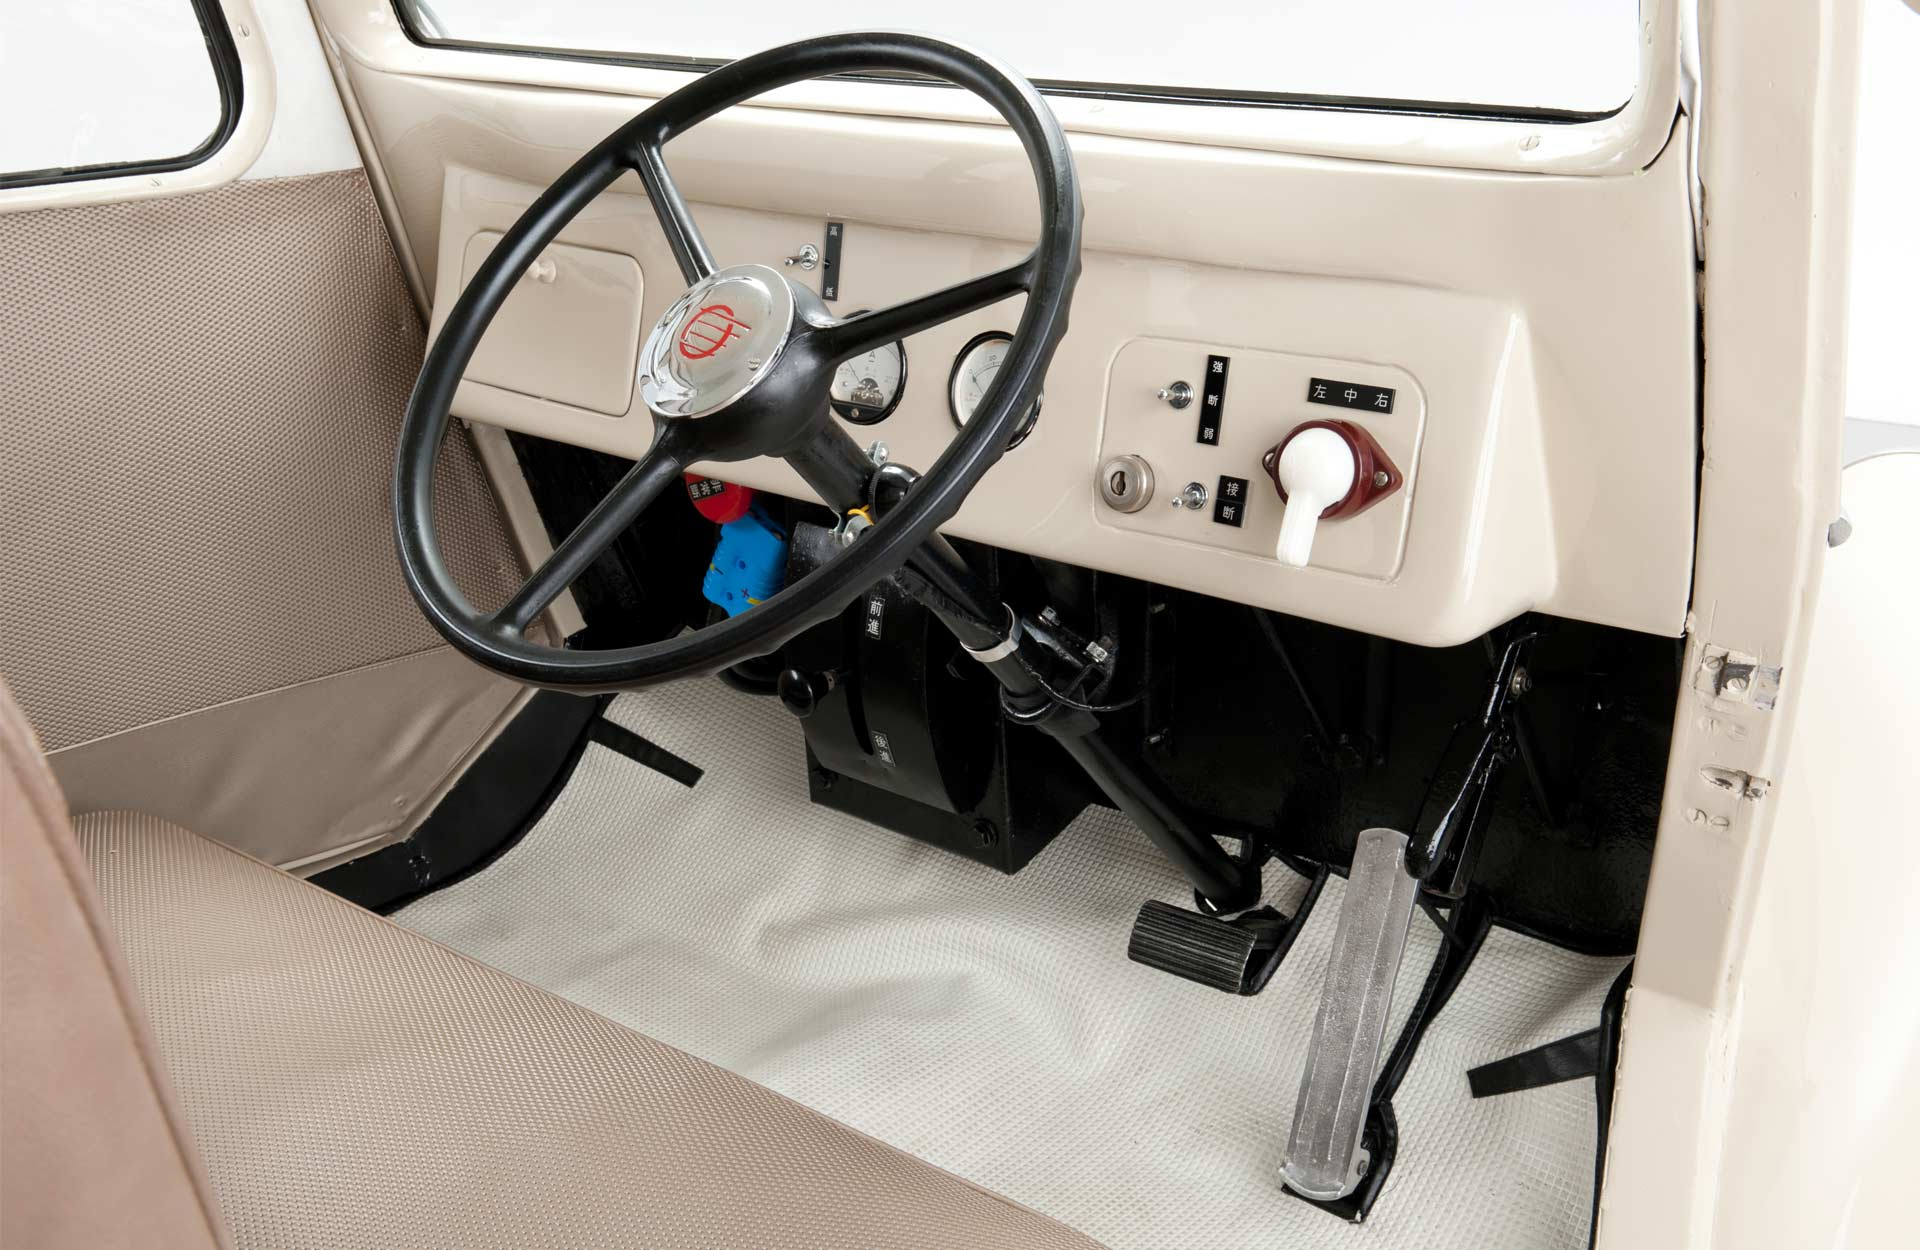 1947-Nissan-Tama-electric-vehicle-interior